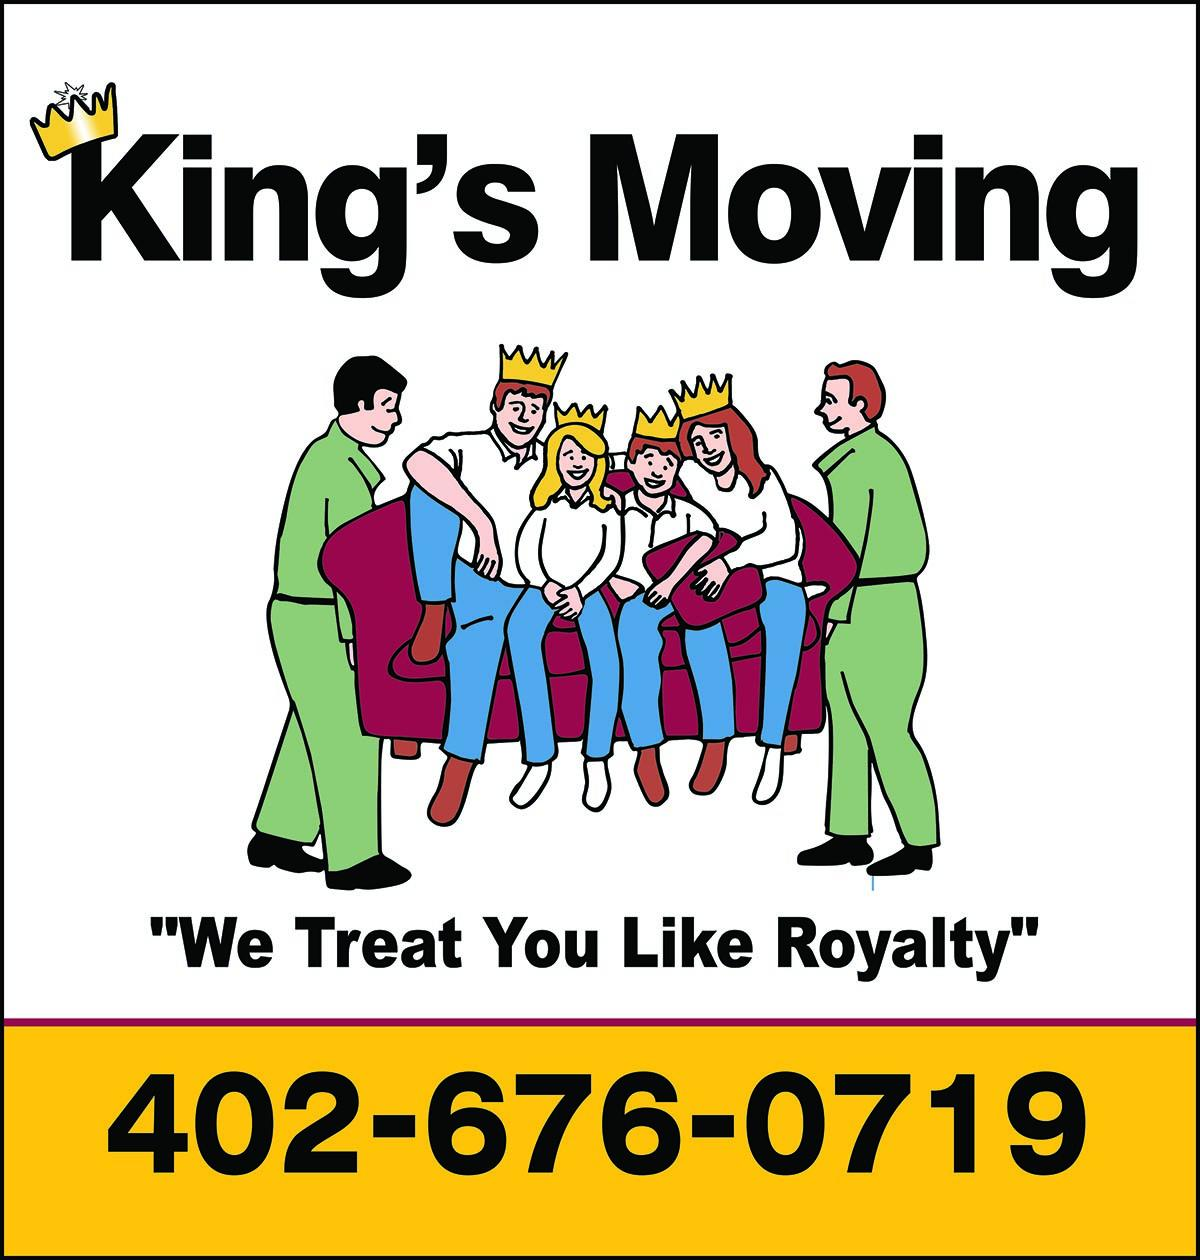 King's Moving